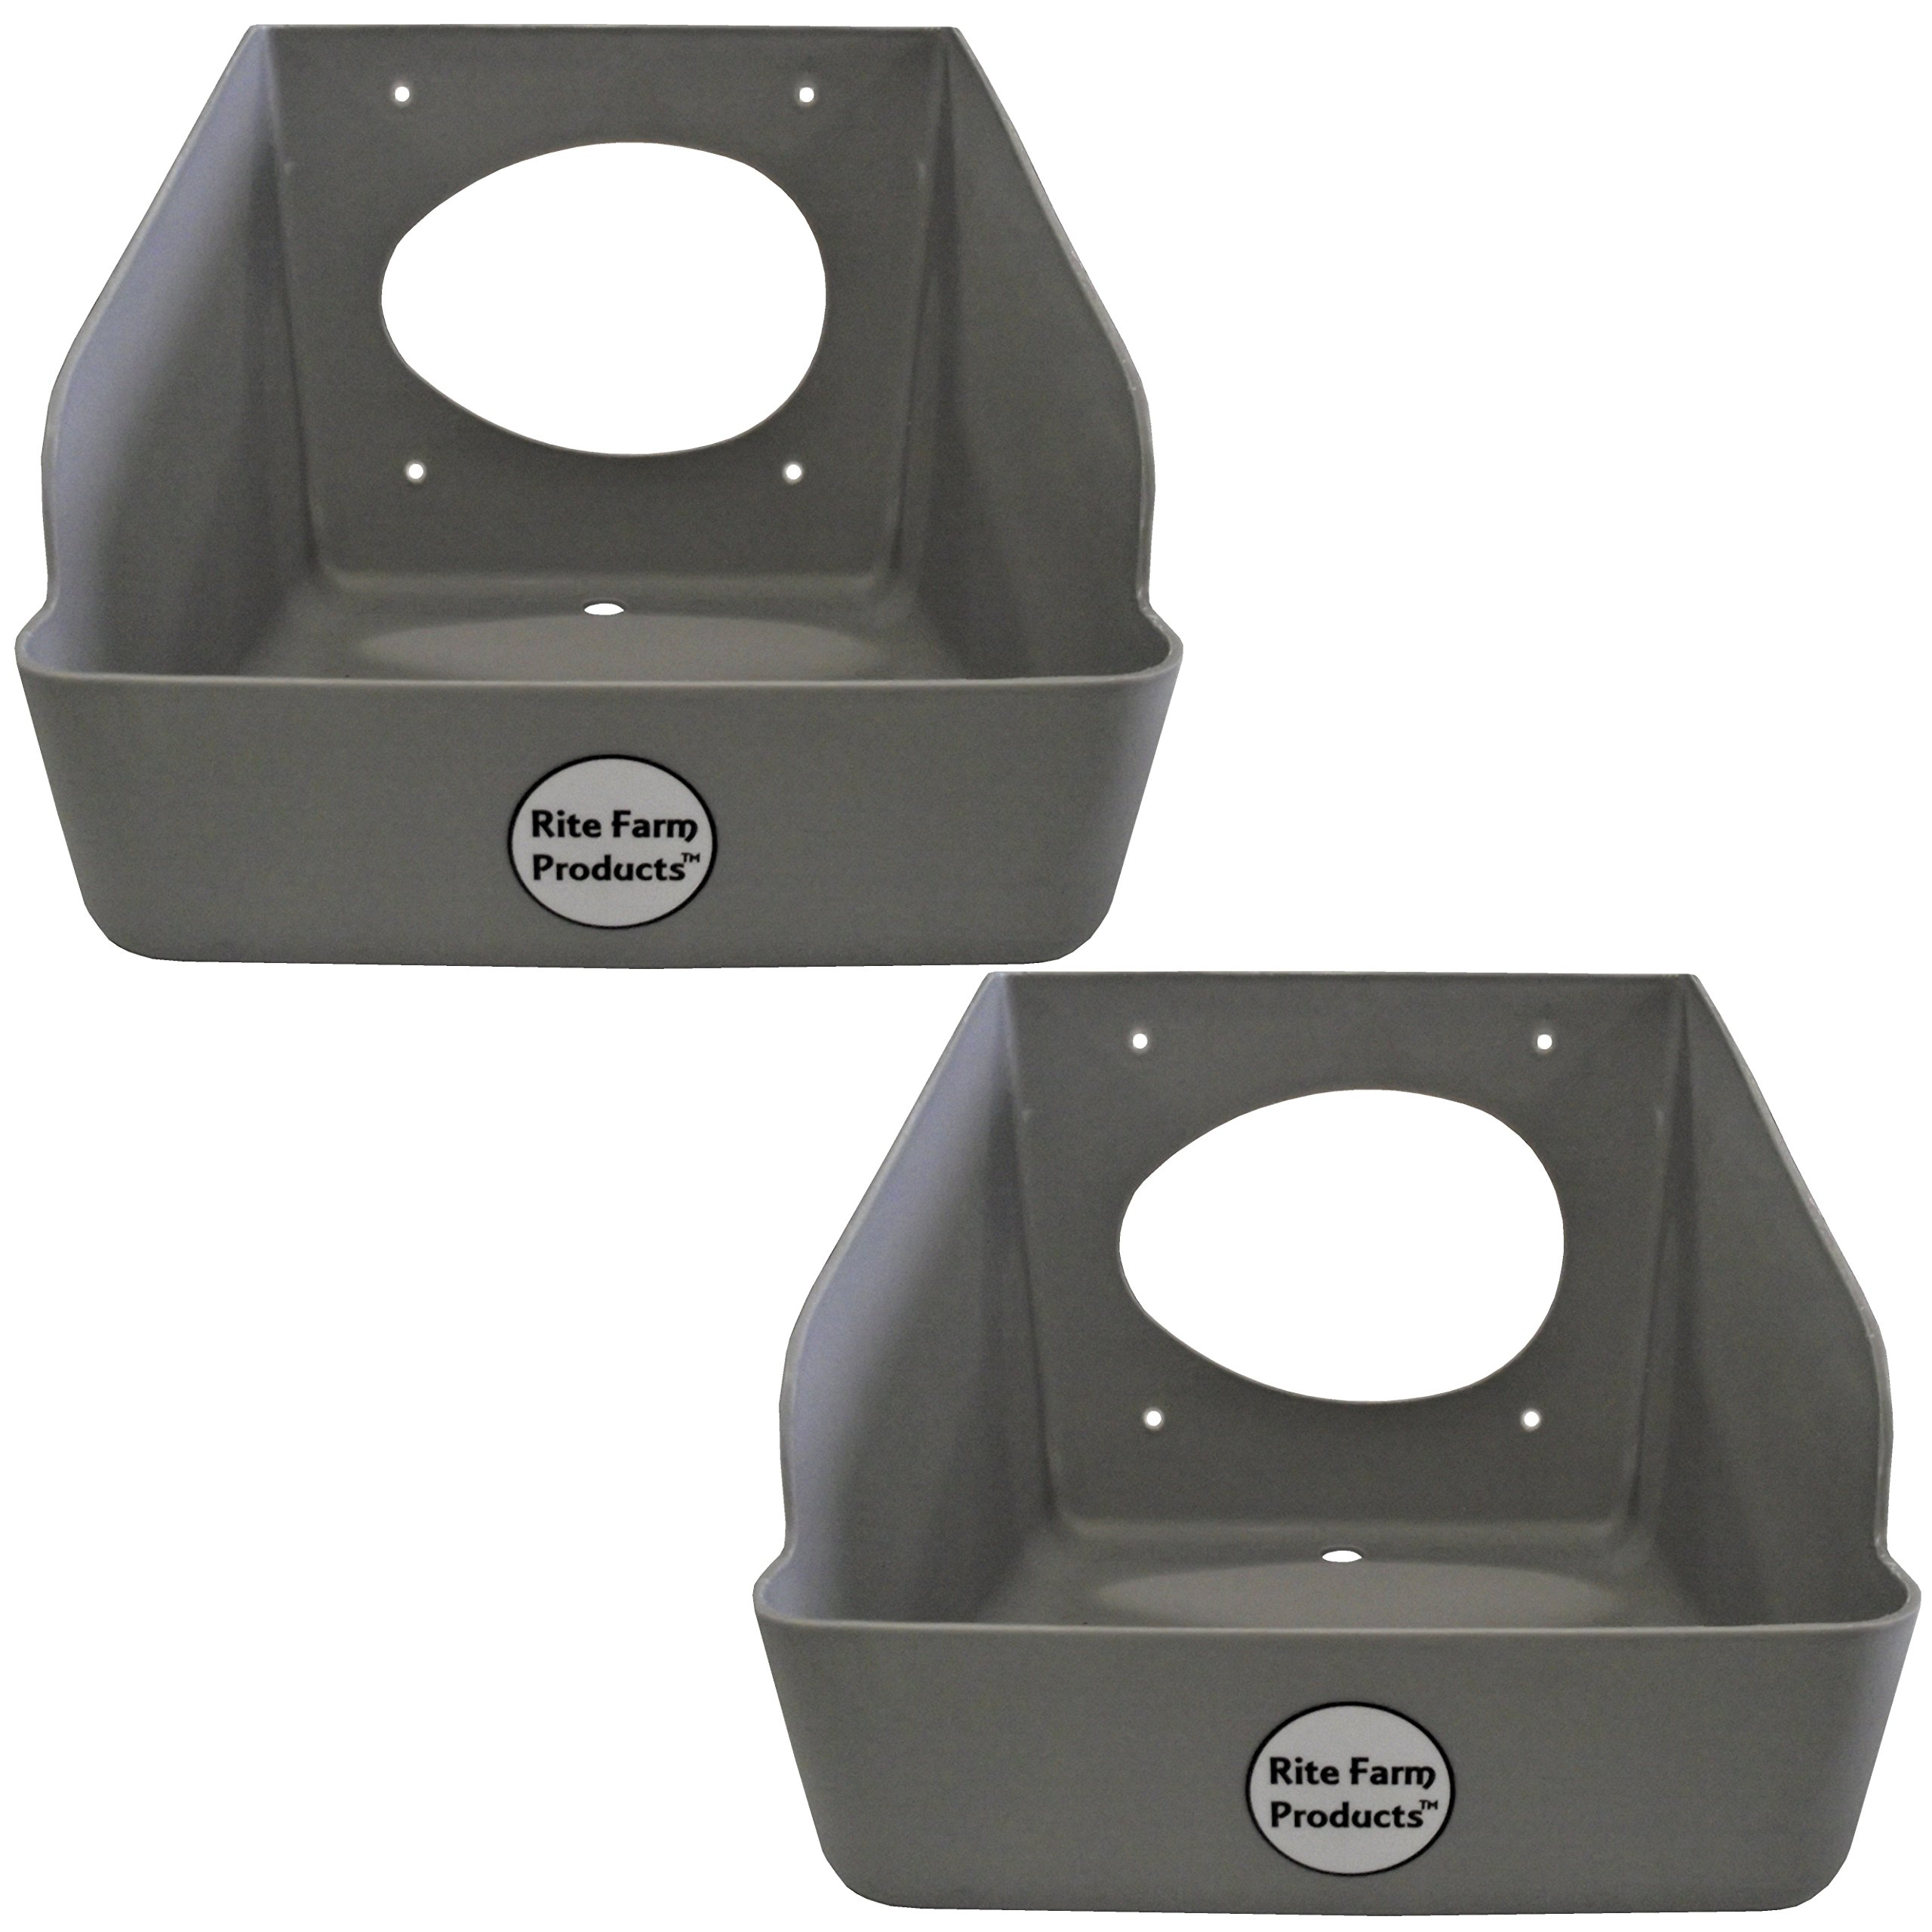 2 PACK RITE FARM PRODUCTS WASHABLE POLY EGG NESTING BOX CHICKEN LAYING COOP NEST